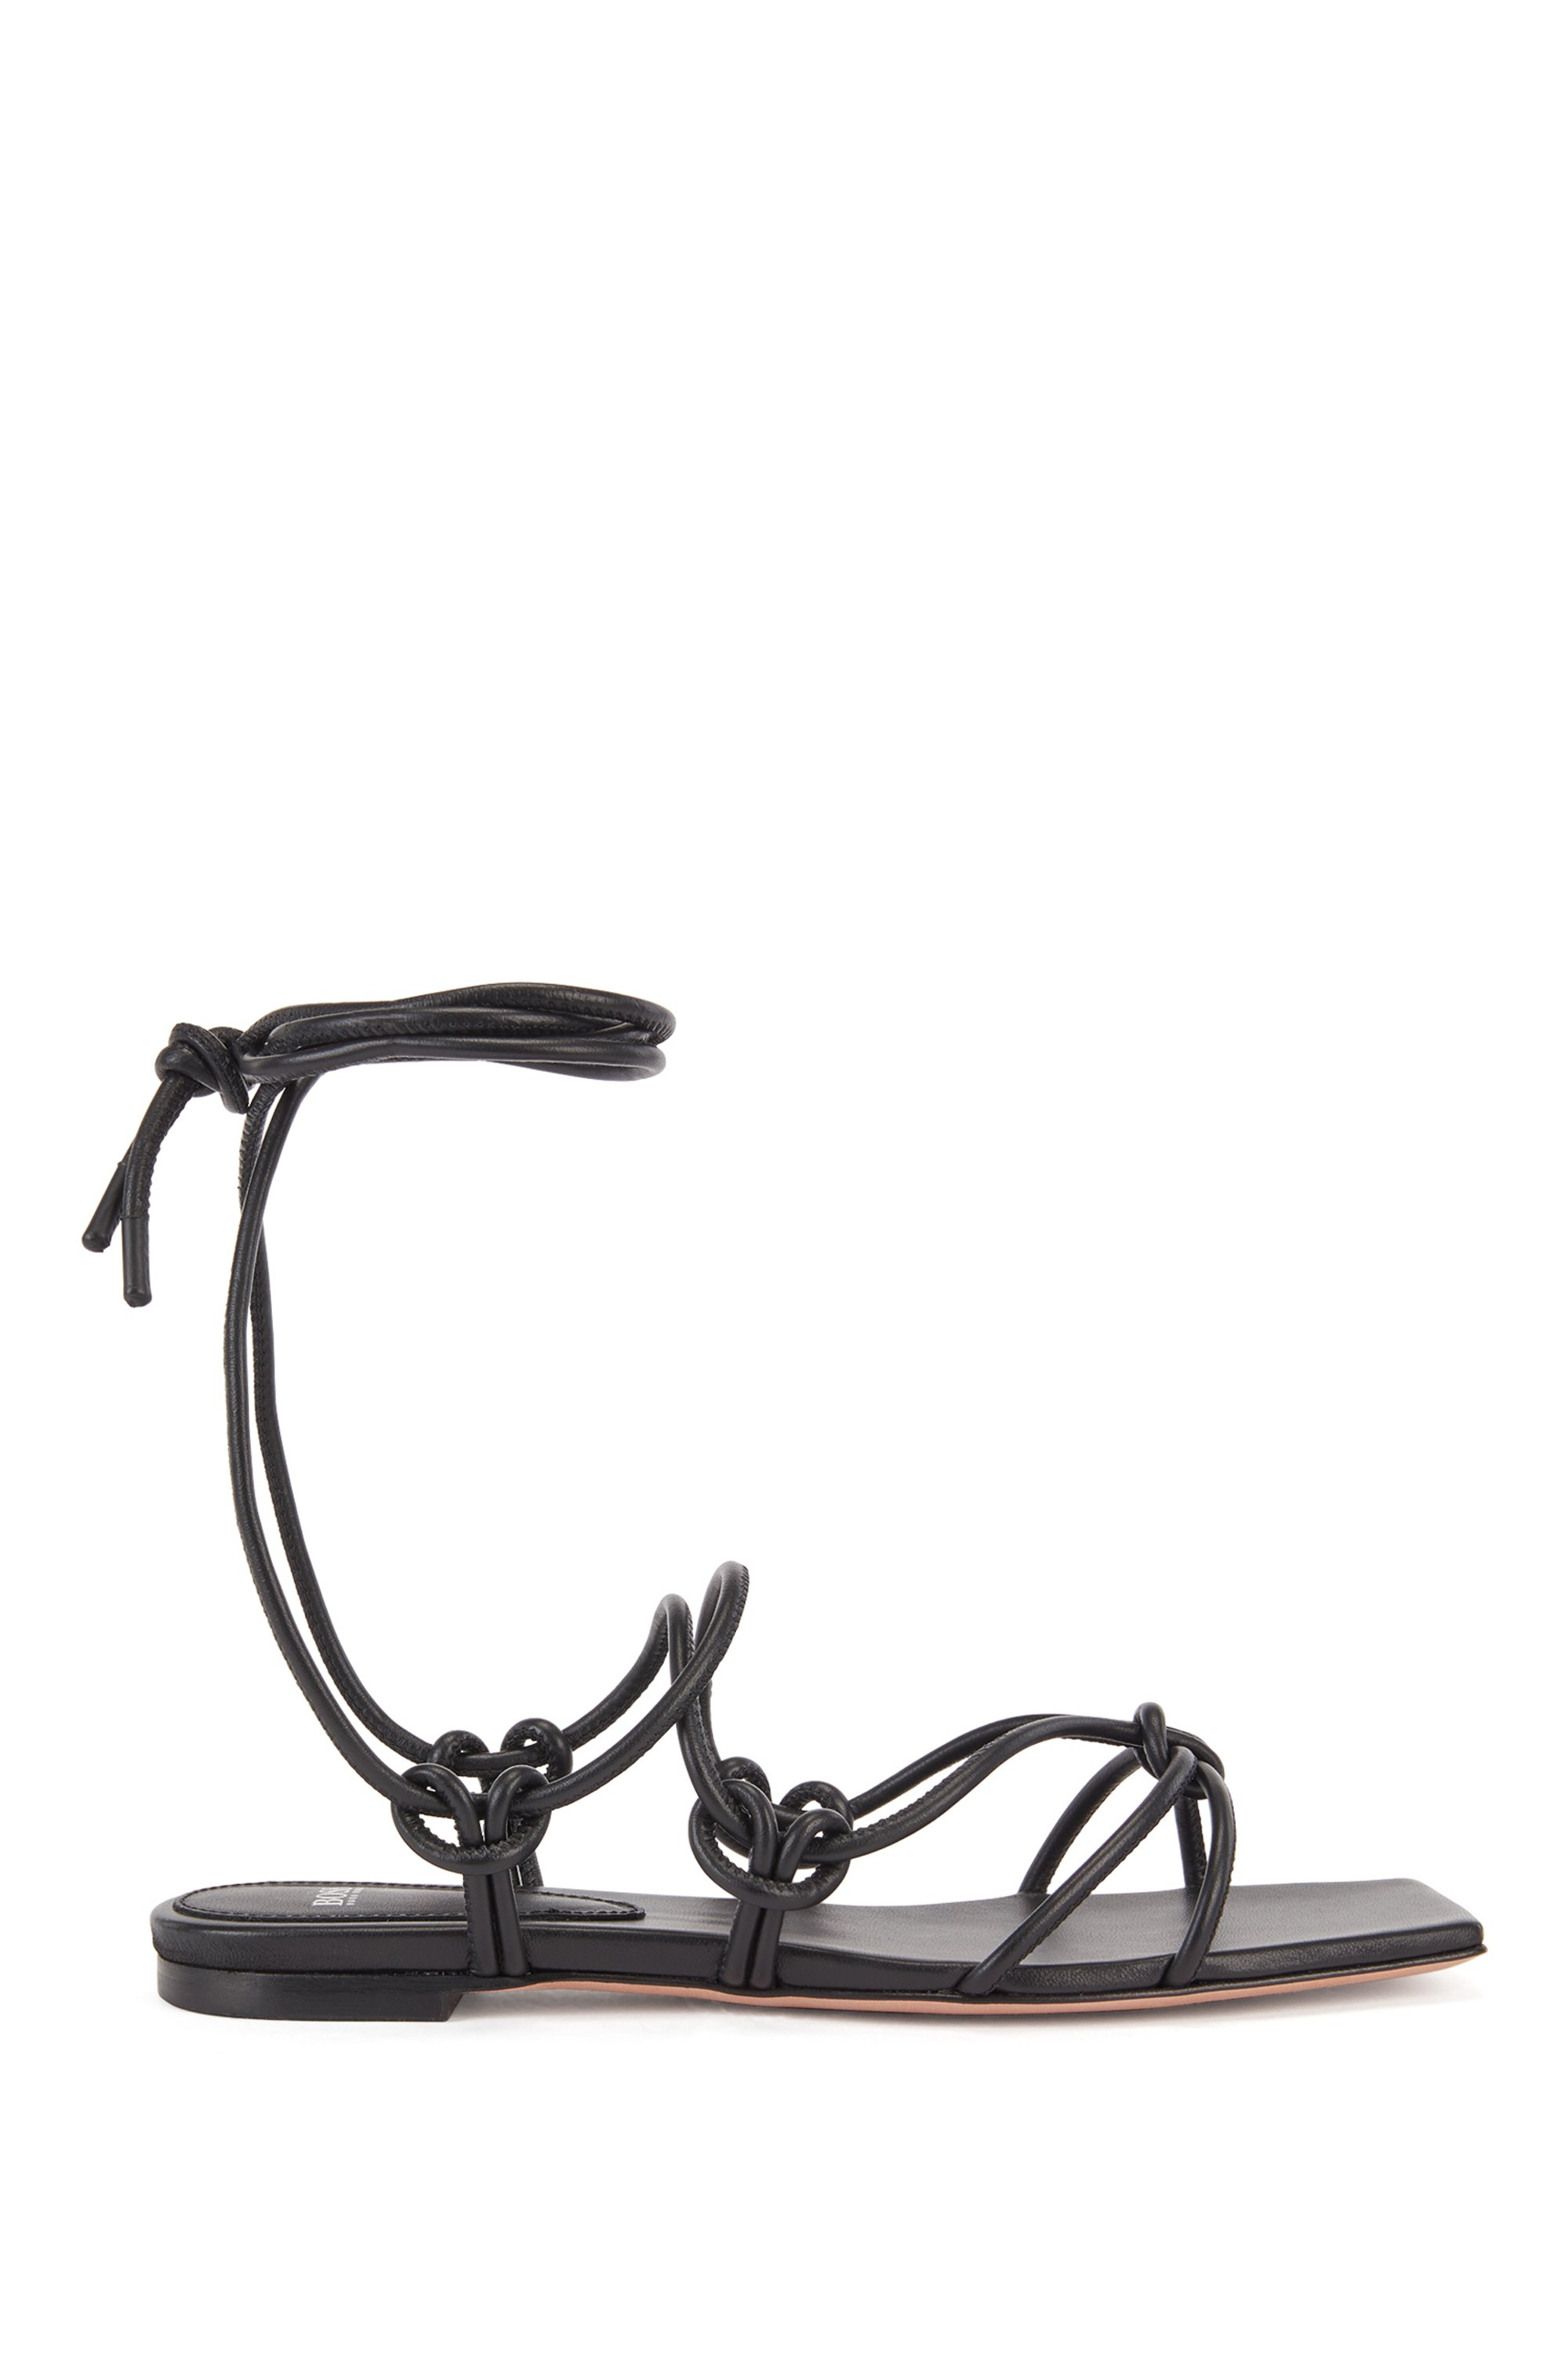 Flat sandals in nappa leather with tie-up straps, Black